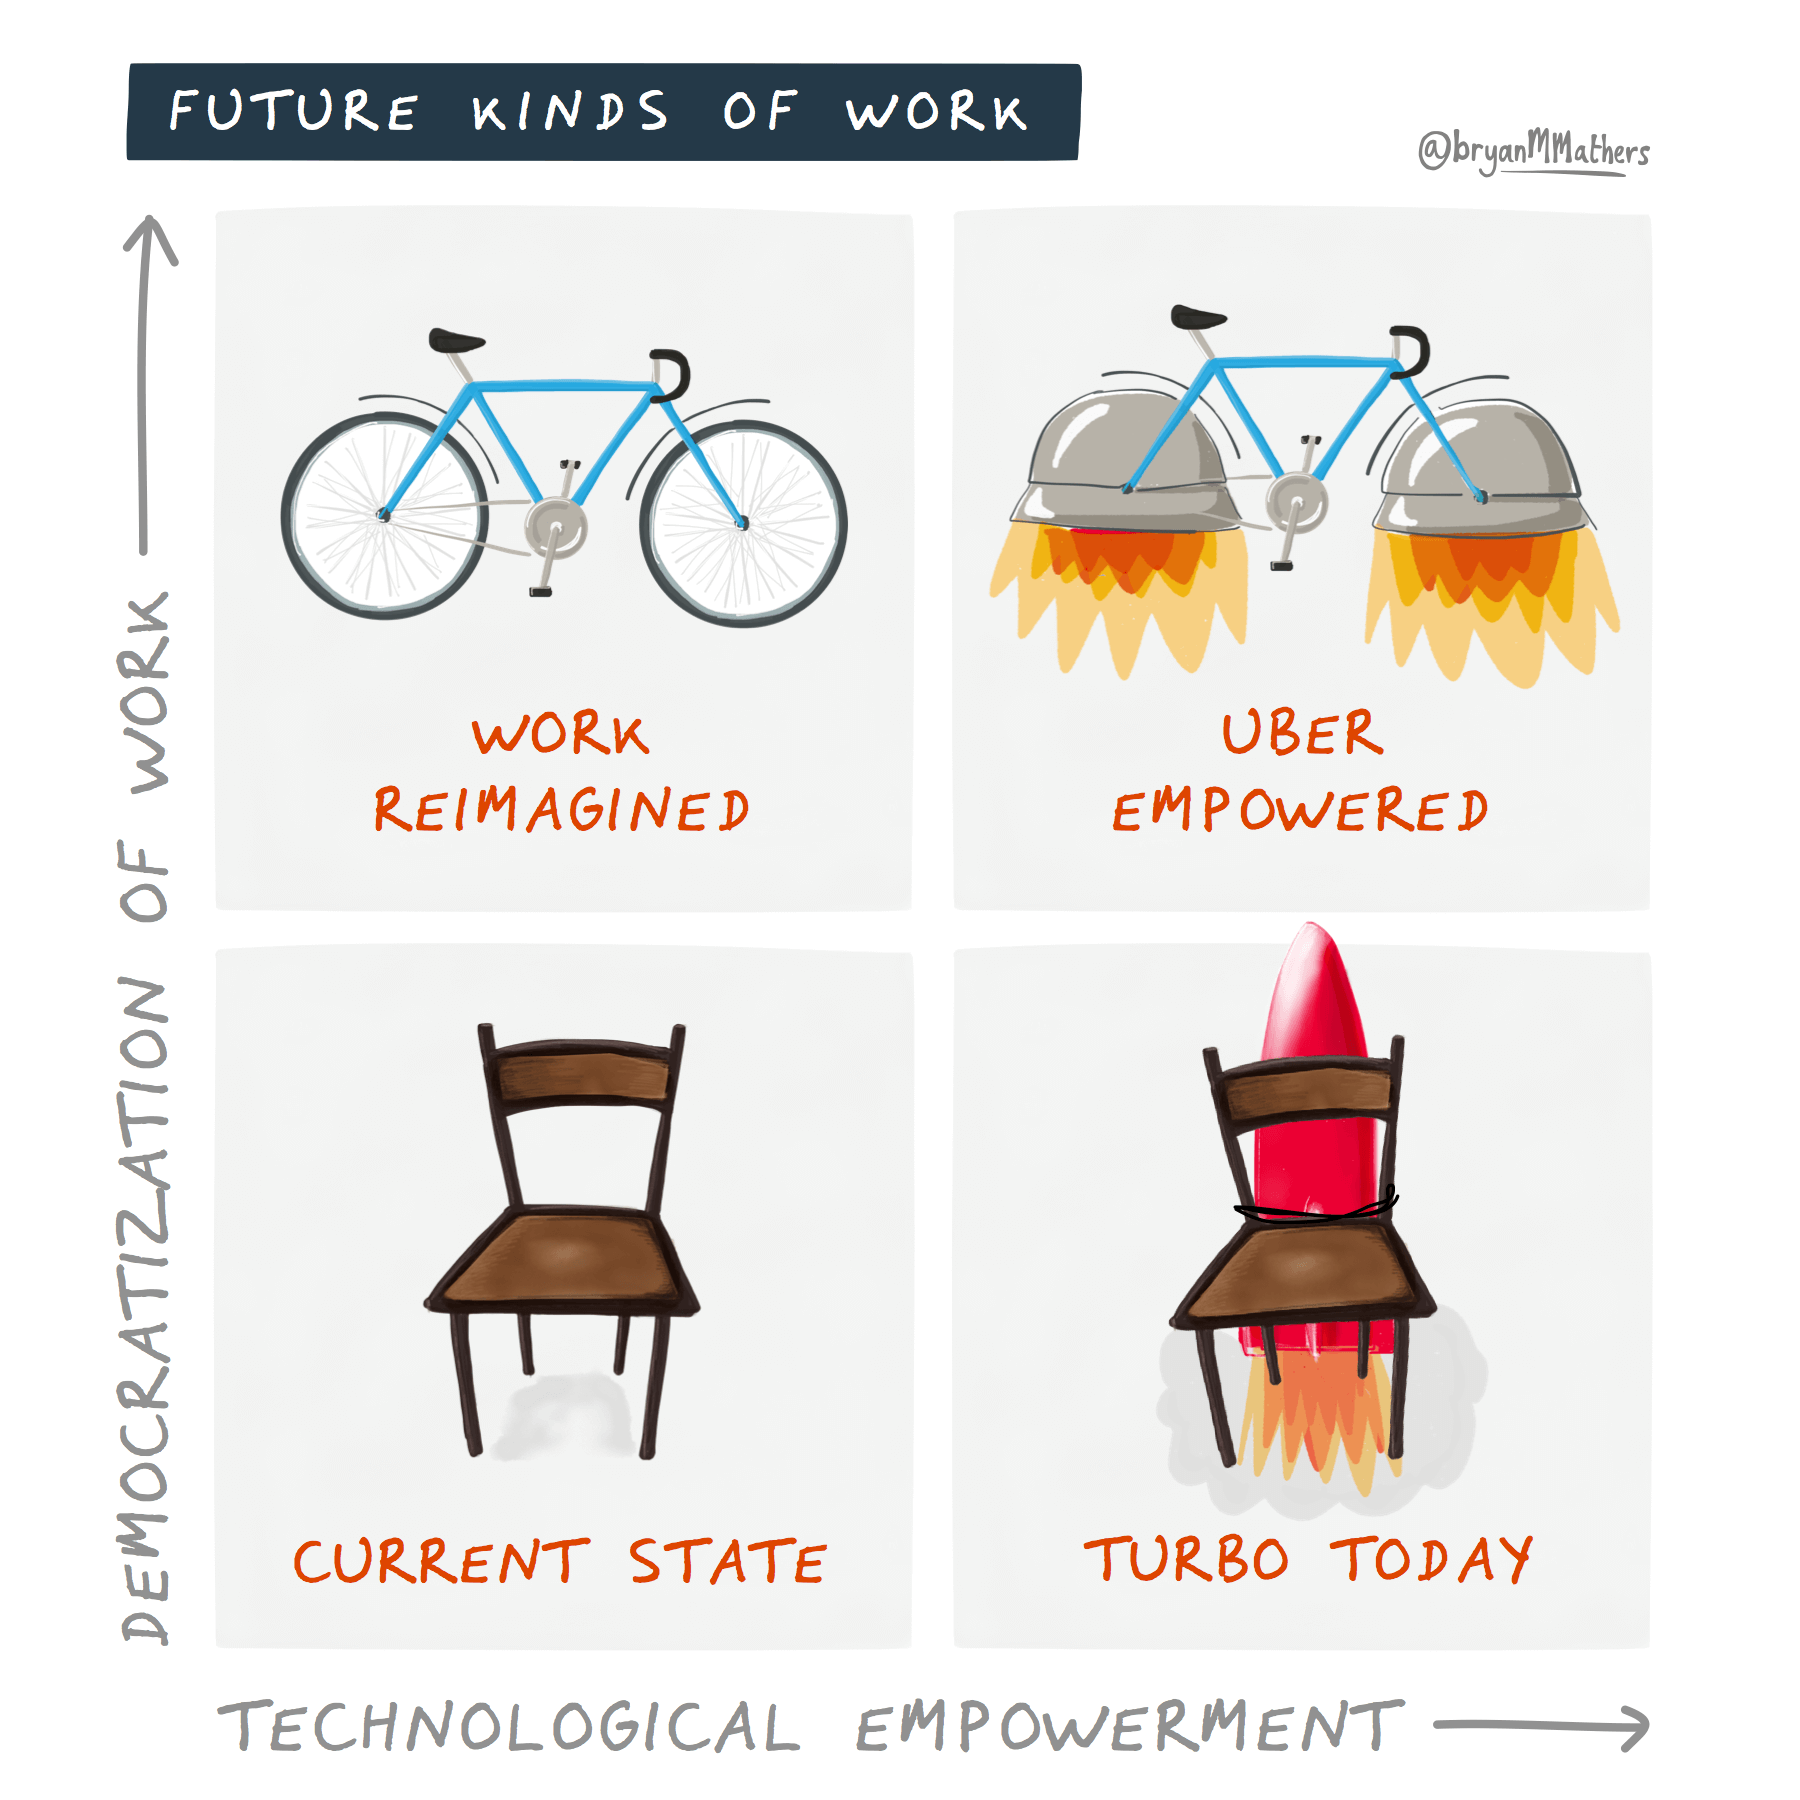 Future kinds of work